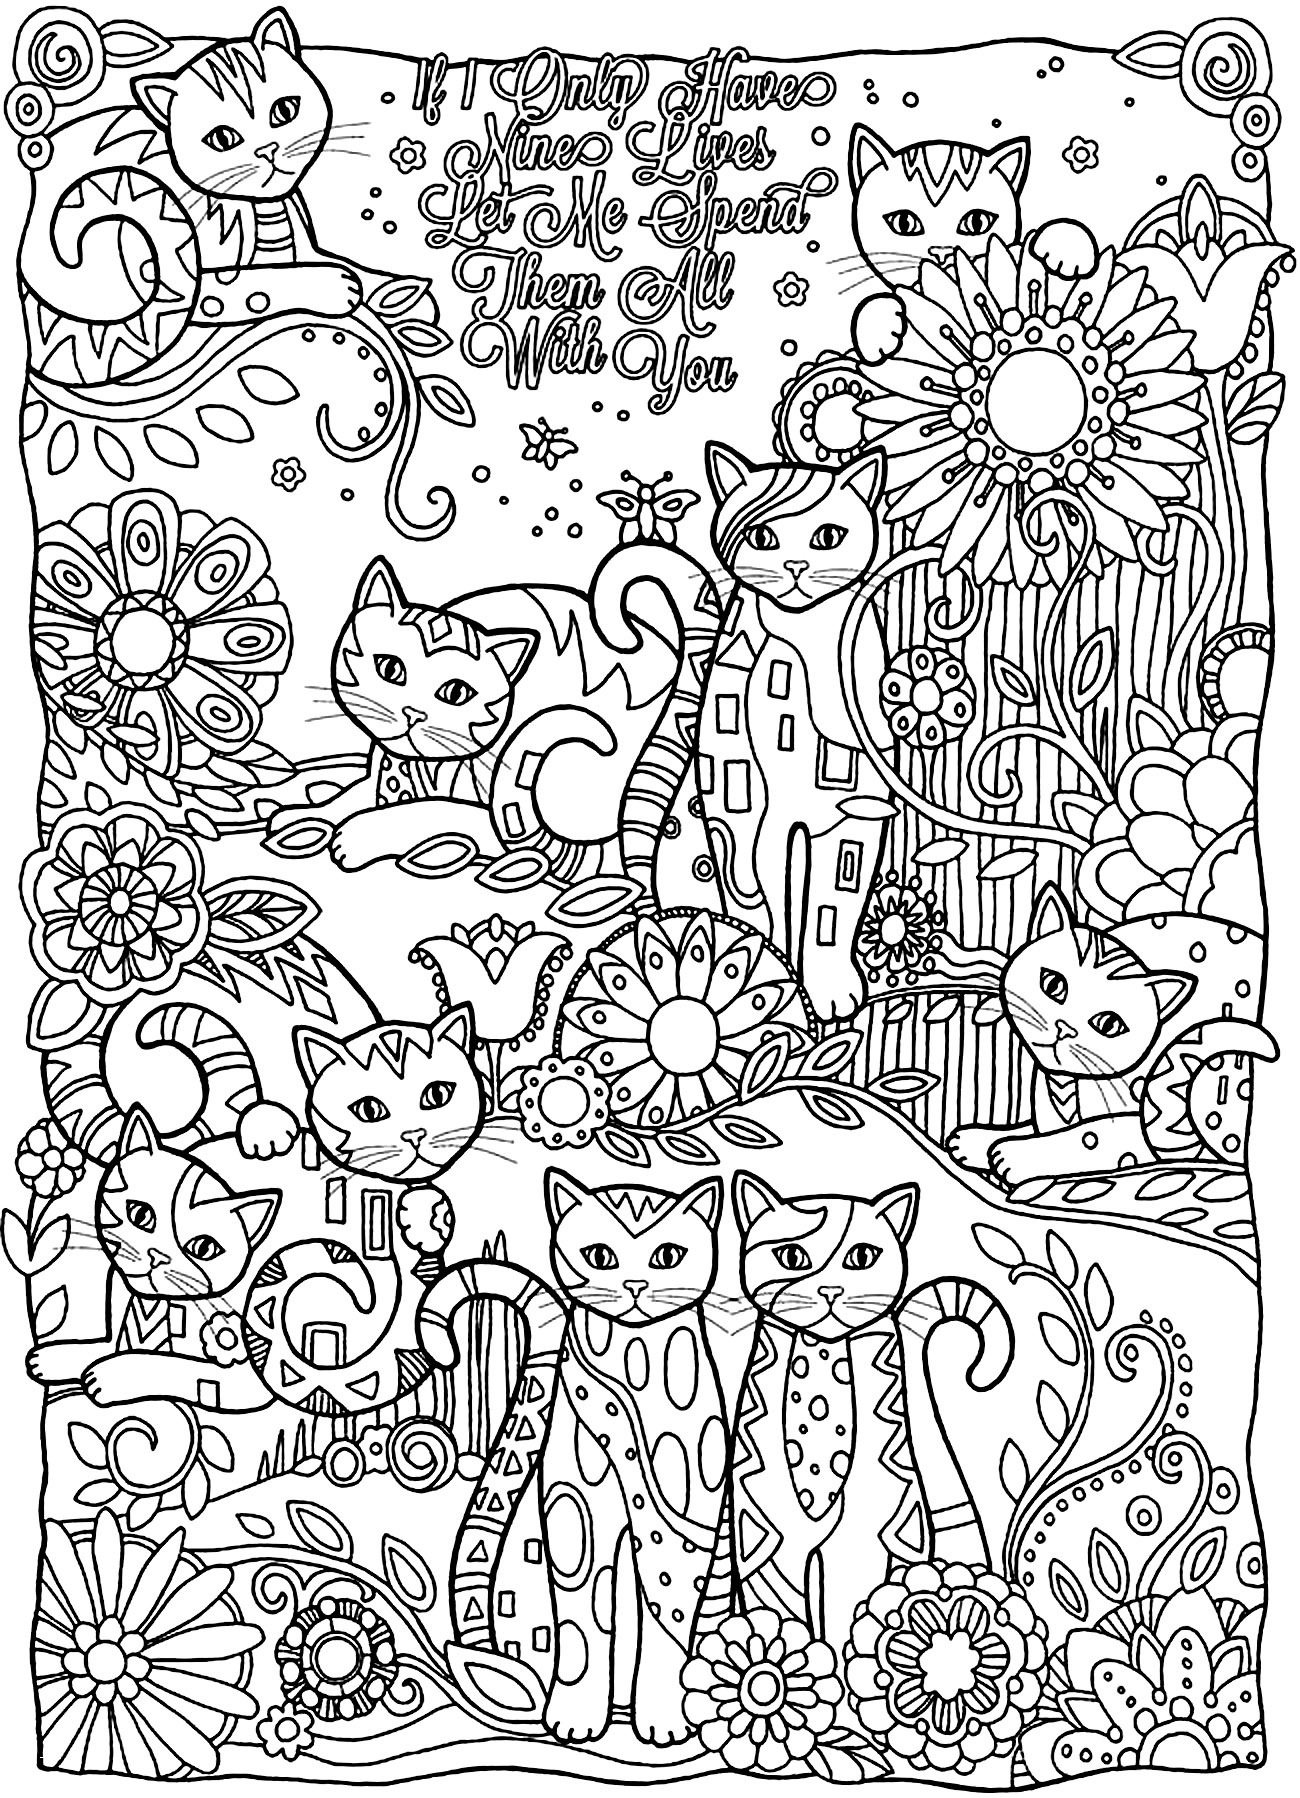 Kindness Coloring Pages  Gallery 3a - Free For Children